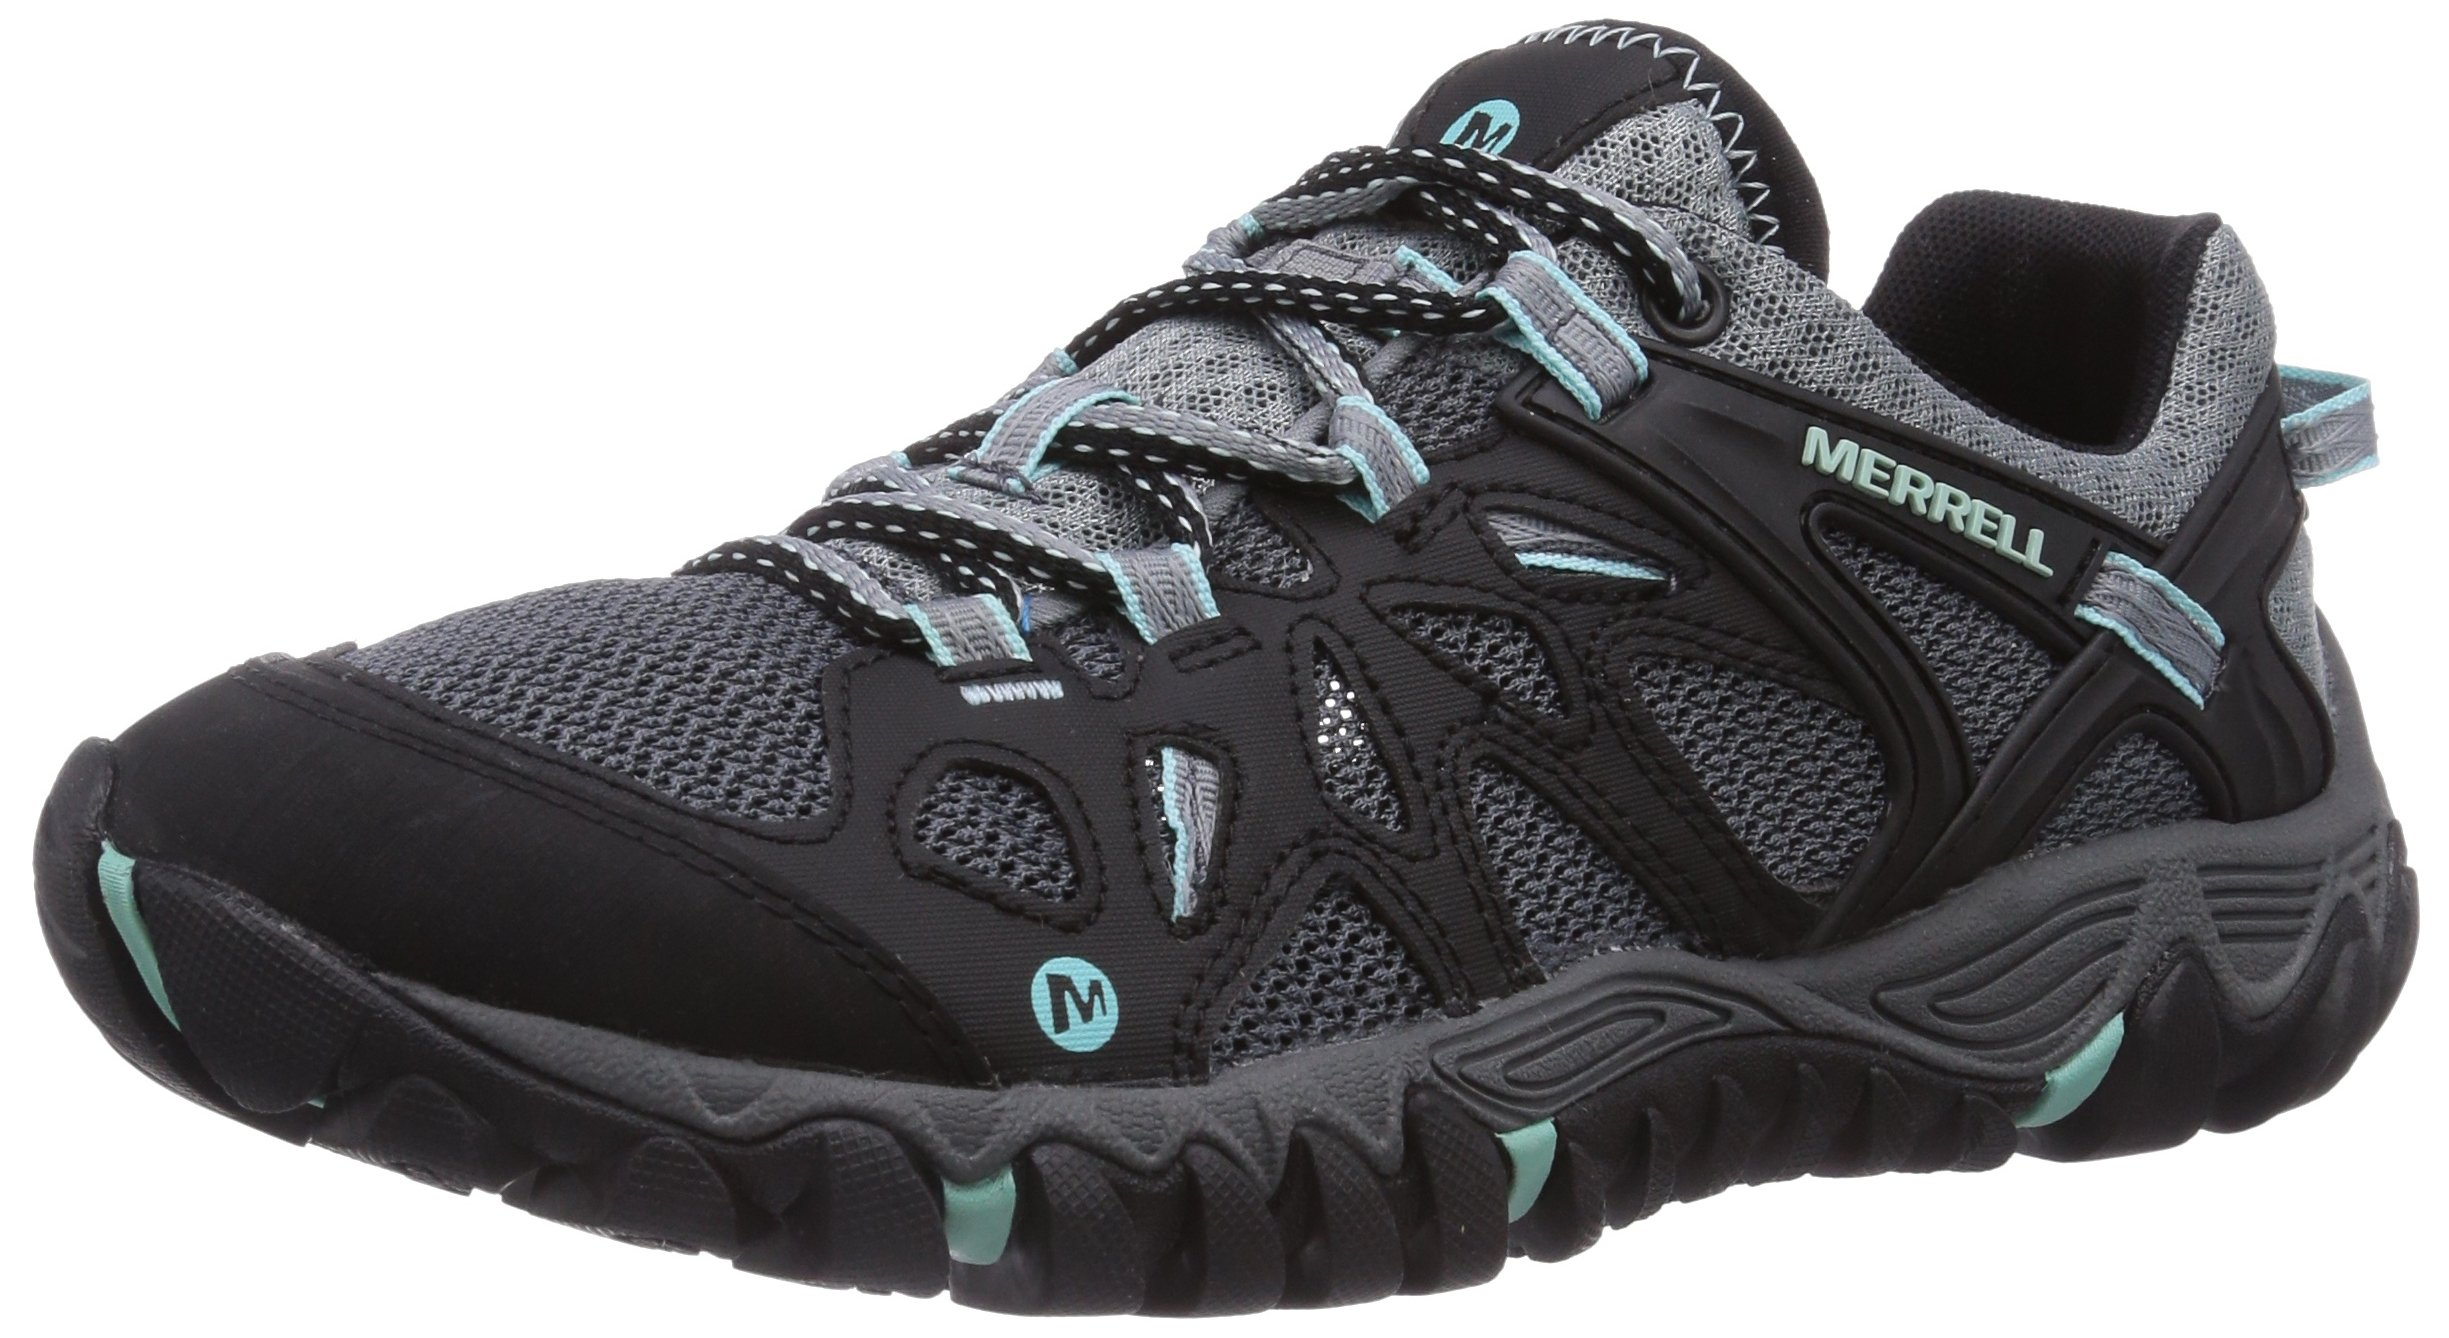 Merrell Women's All Out Blaze Aero Sport Hiking Water Shoe,Black/Aventurine,7.5 M US by Merrell